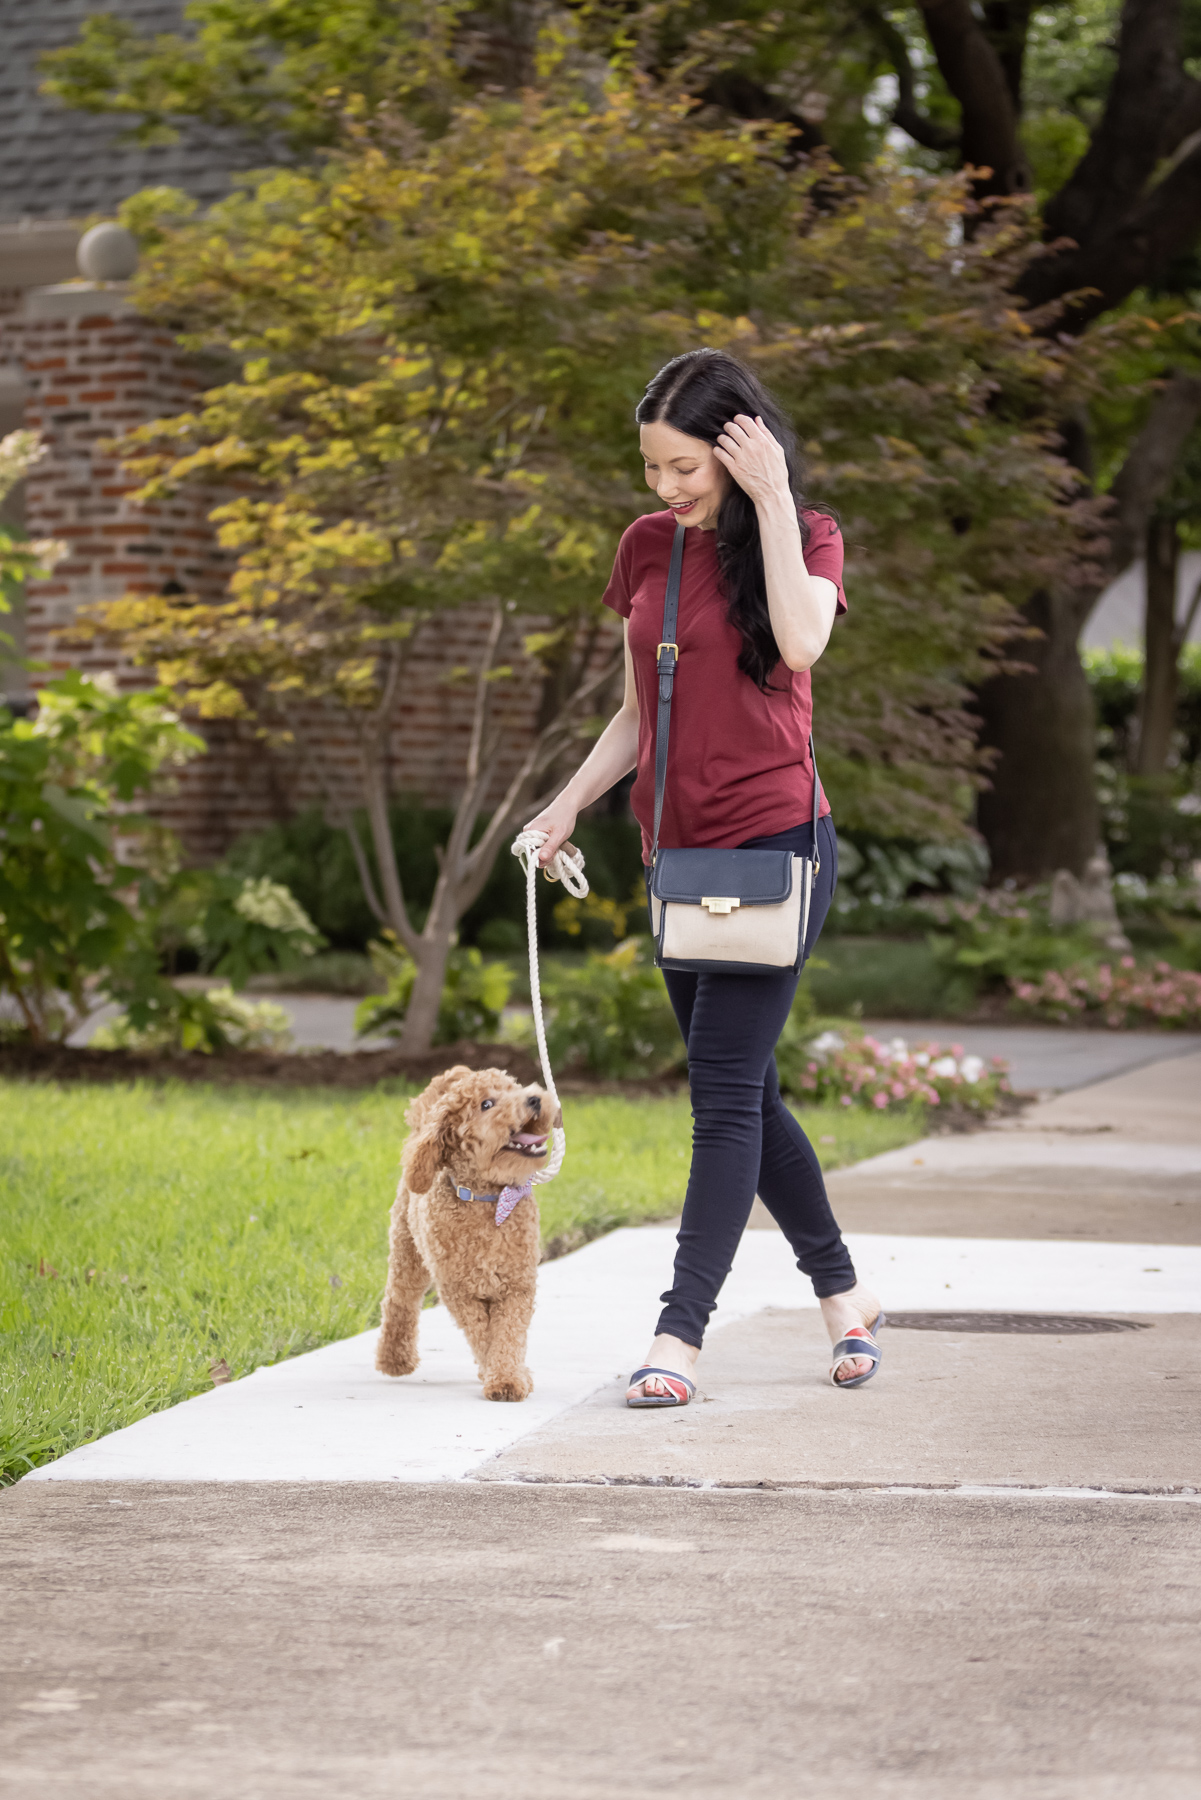 Mott & Bow Jeans and Tee Shirt, Tommy Hilfiger Crossbody Bag, J. Crew Sandals, Italic Cateye Sunglasses, Mini Goldendoodle puppy, Foggy Dog Bowtie, Preppy Style, Dallas Fashion Blogger | Mott and Bow Jeans by popular Dallas fashion blog, Pretty Little Shoppers: image of a woman wearing a crimson t-shirt, Mott and Bow Jeans, blue and red strap slide sandals, and black and tan crossbody bag while walking her doodle breed dog outside.